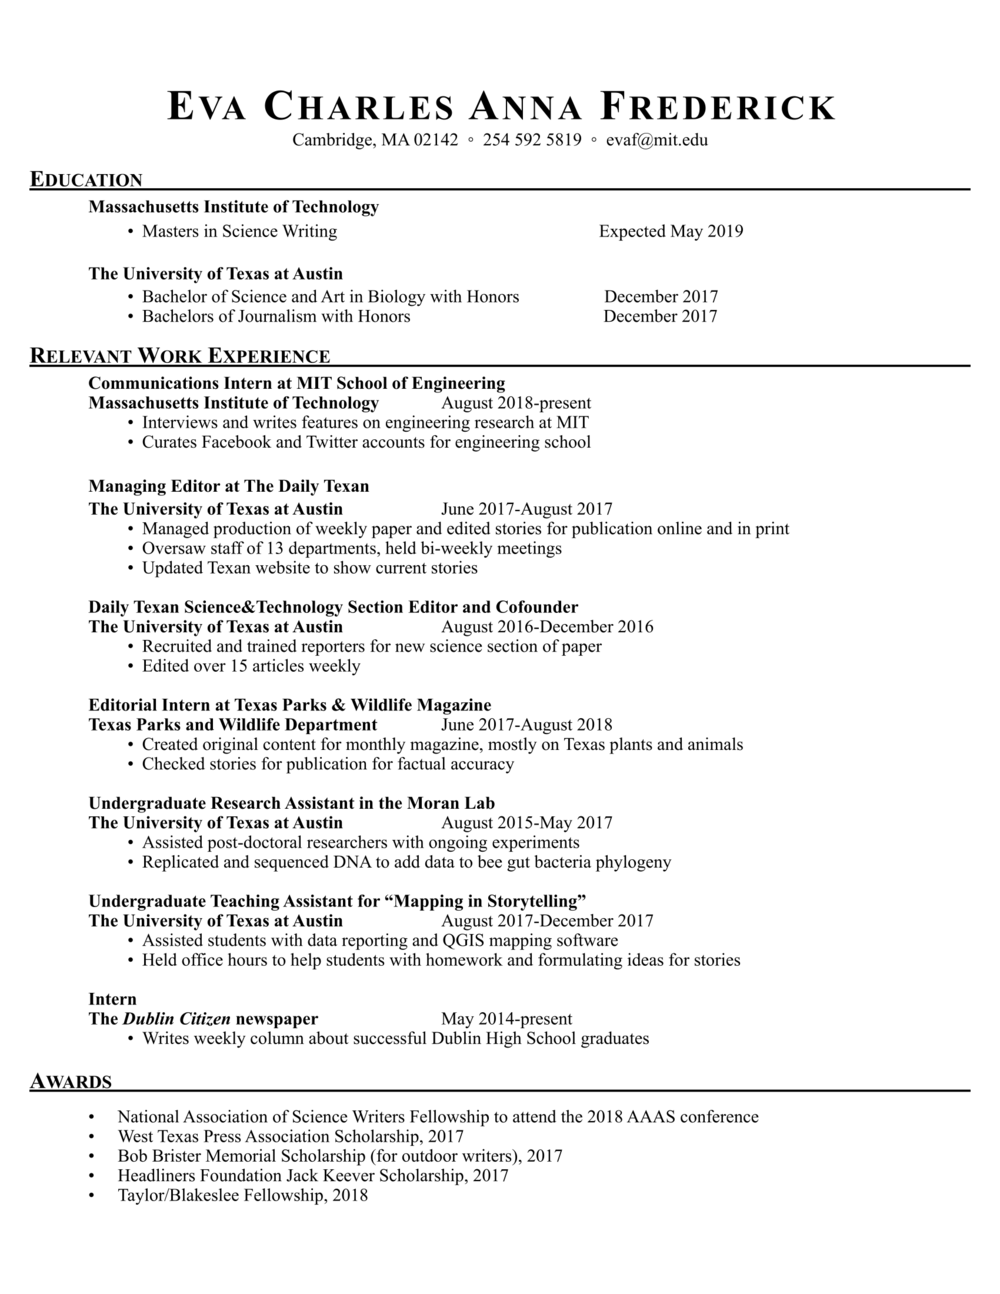 Eva Frederick resume for review-1.png